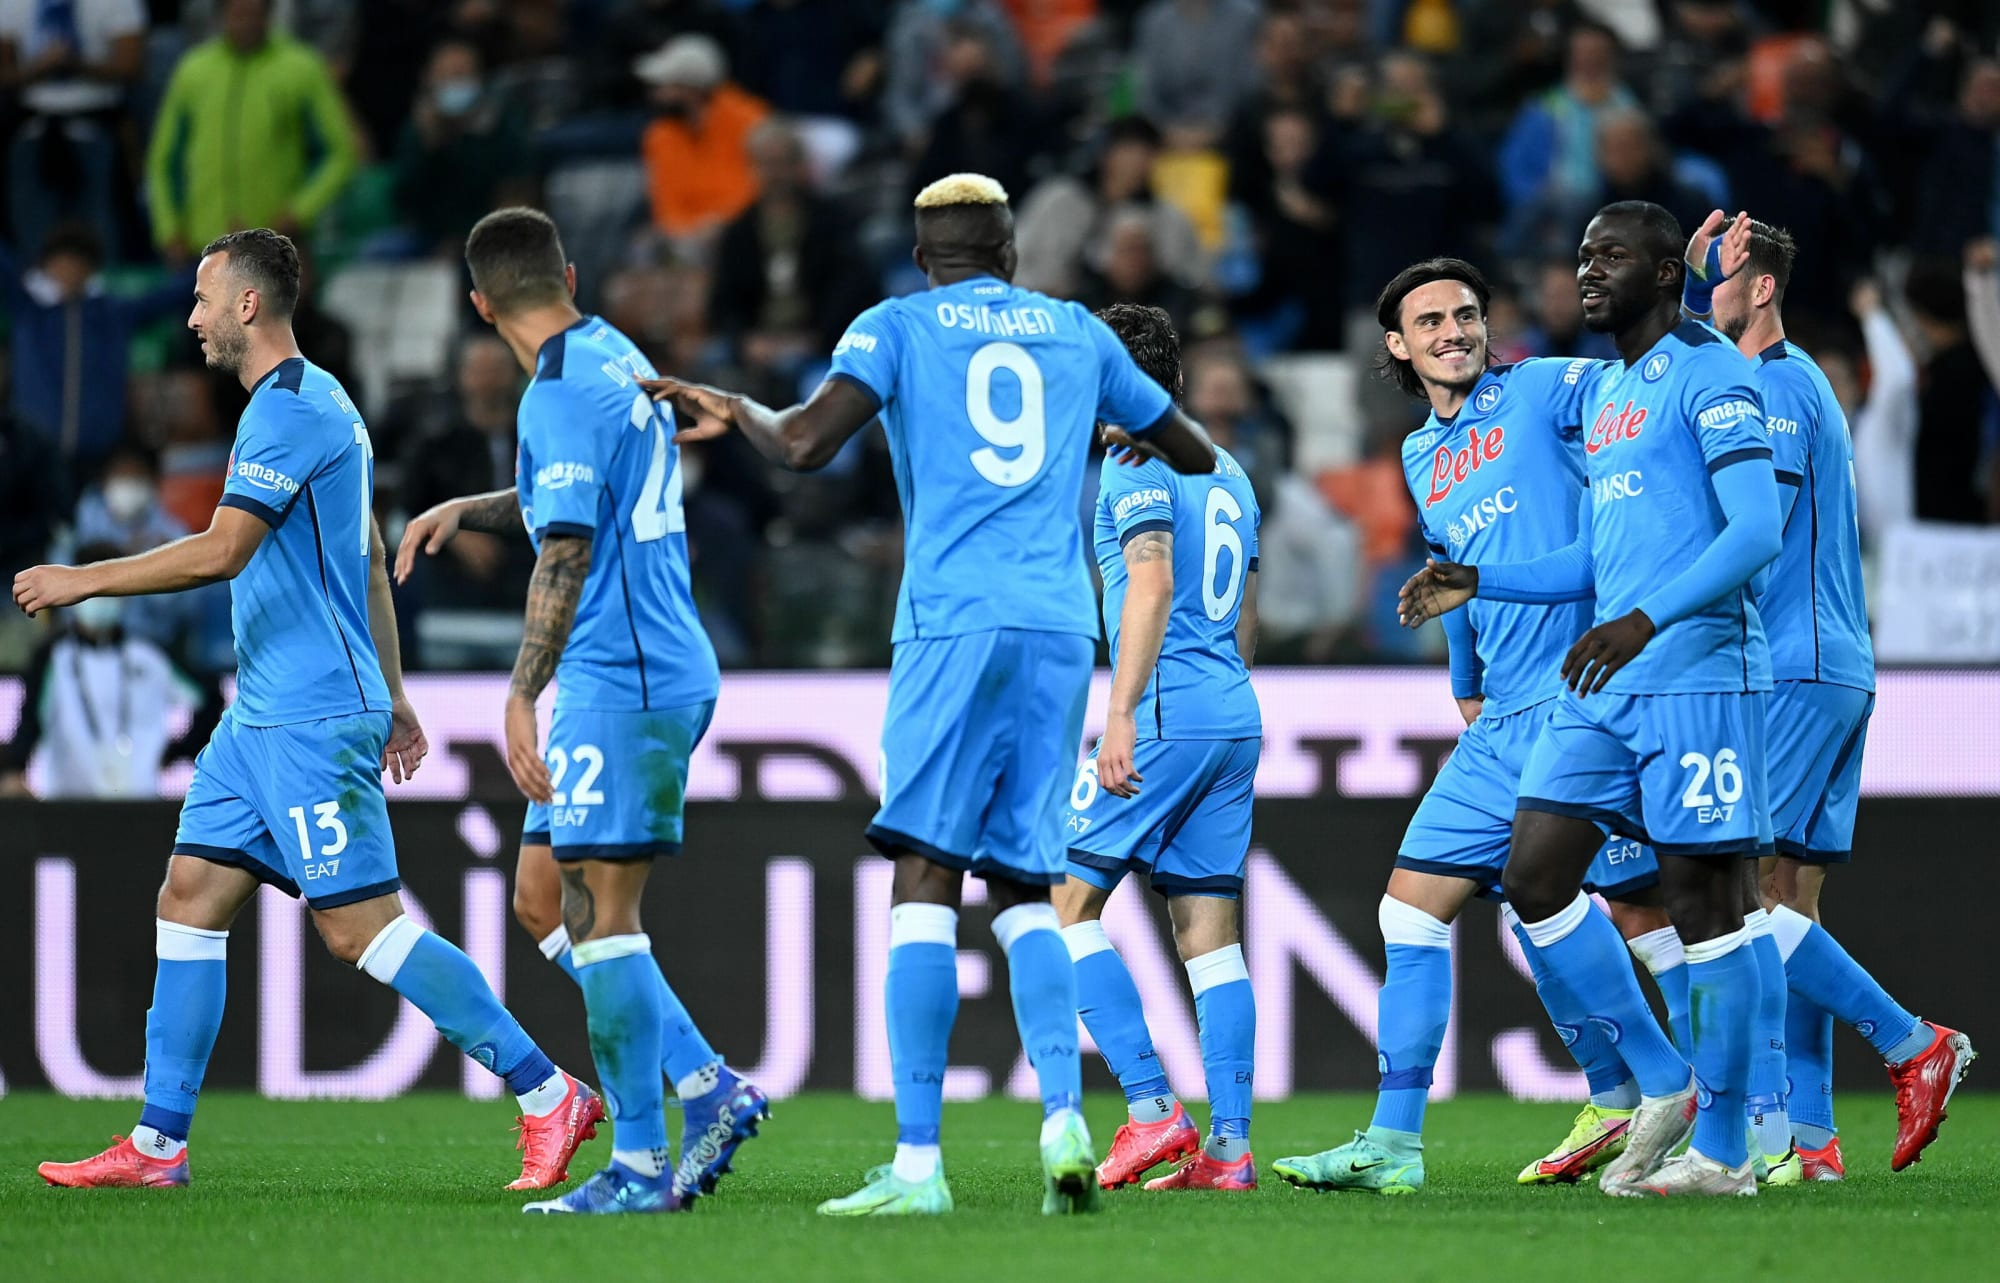 Serie A Matchday 4 Round-Up – Roma lose as Napoli continue 100% start